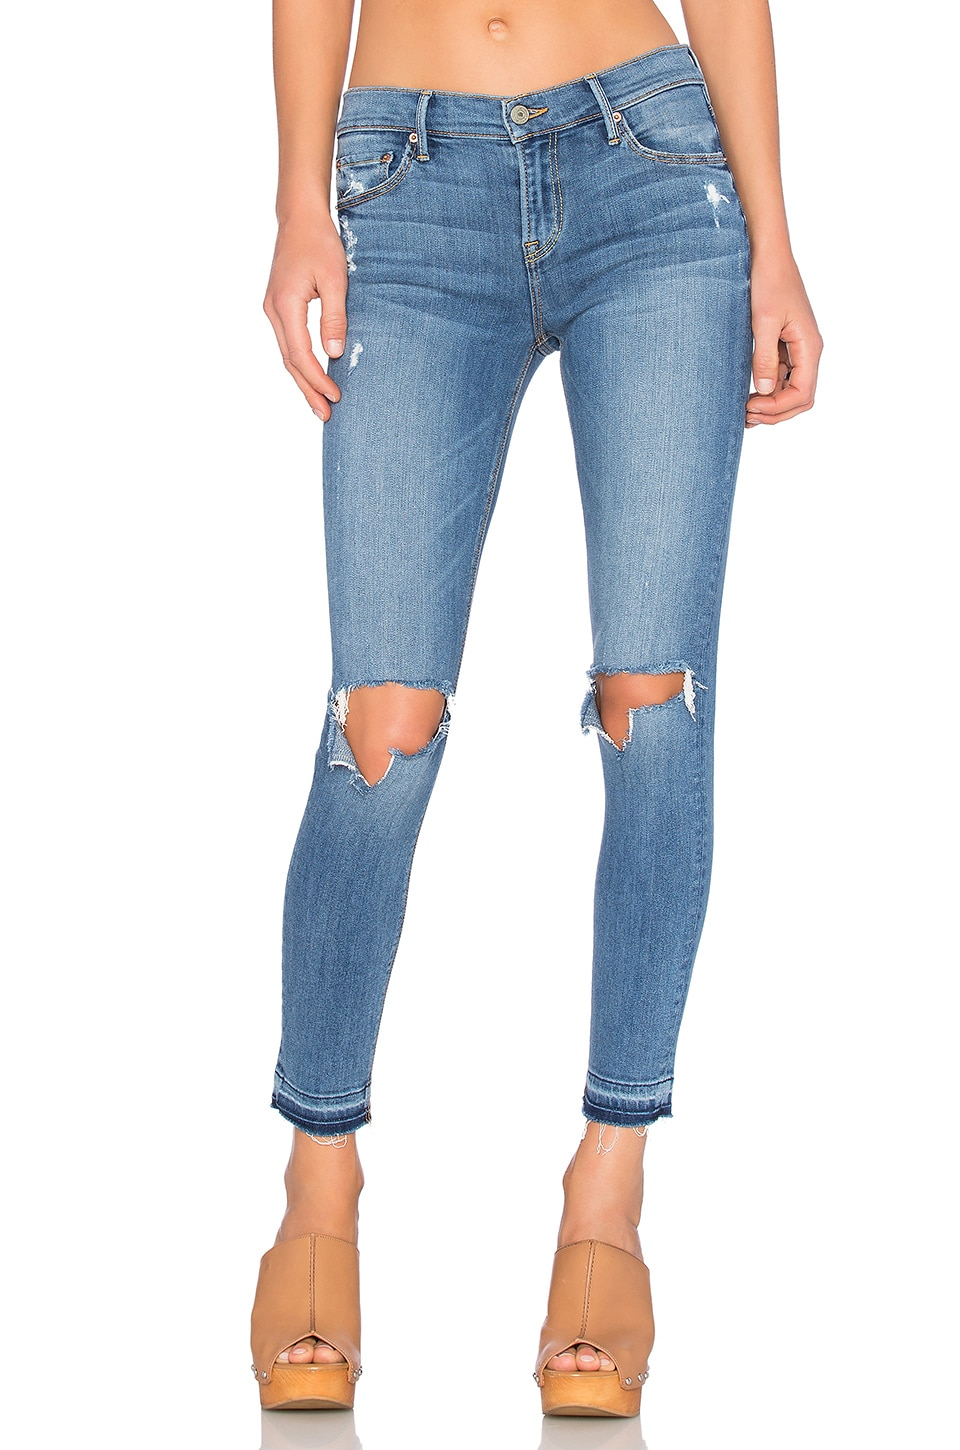 GRLFRND PETITE Candice Mid-Rise Skinny Jean in A Love Song